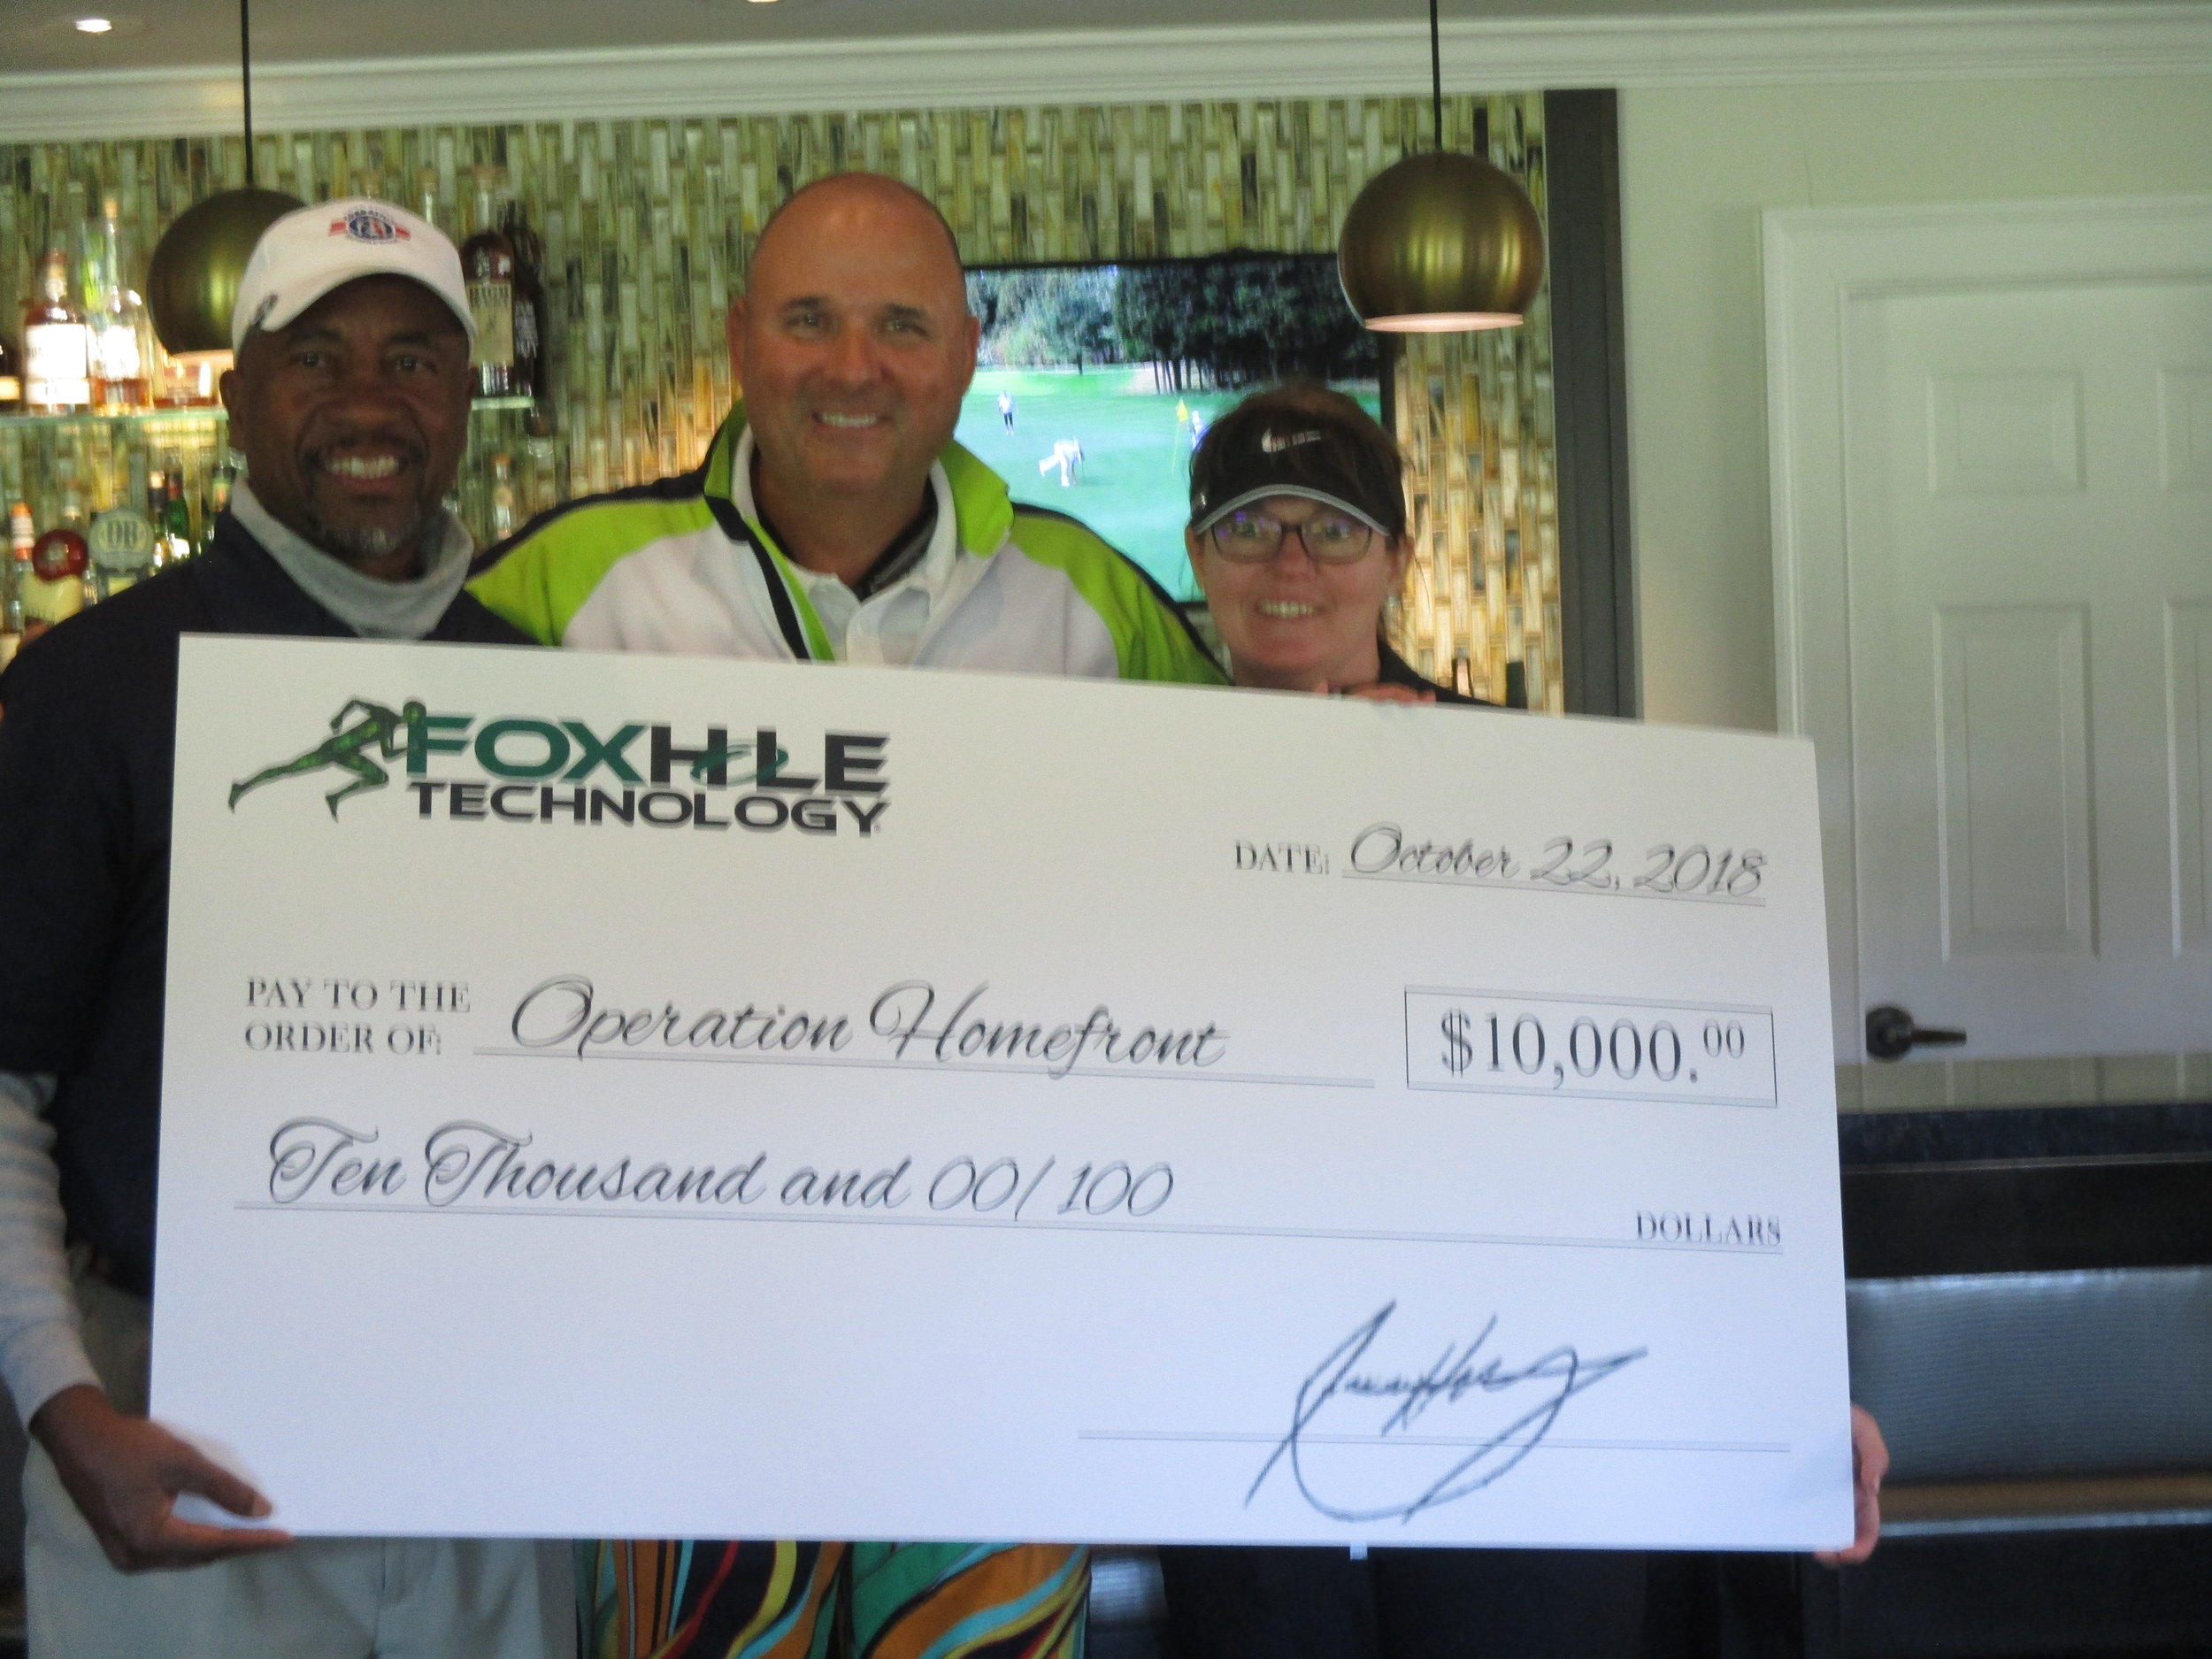 Wes Hester, CEO, Foxhole Technology presents Bruce Anderson and Shannon Grynkewich of Operation Homefront with a $10,000 check from proceeds from the Foxhole Technology Charity Golf Tournament.